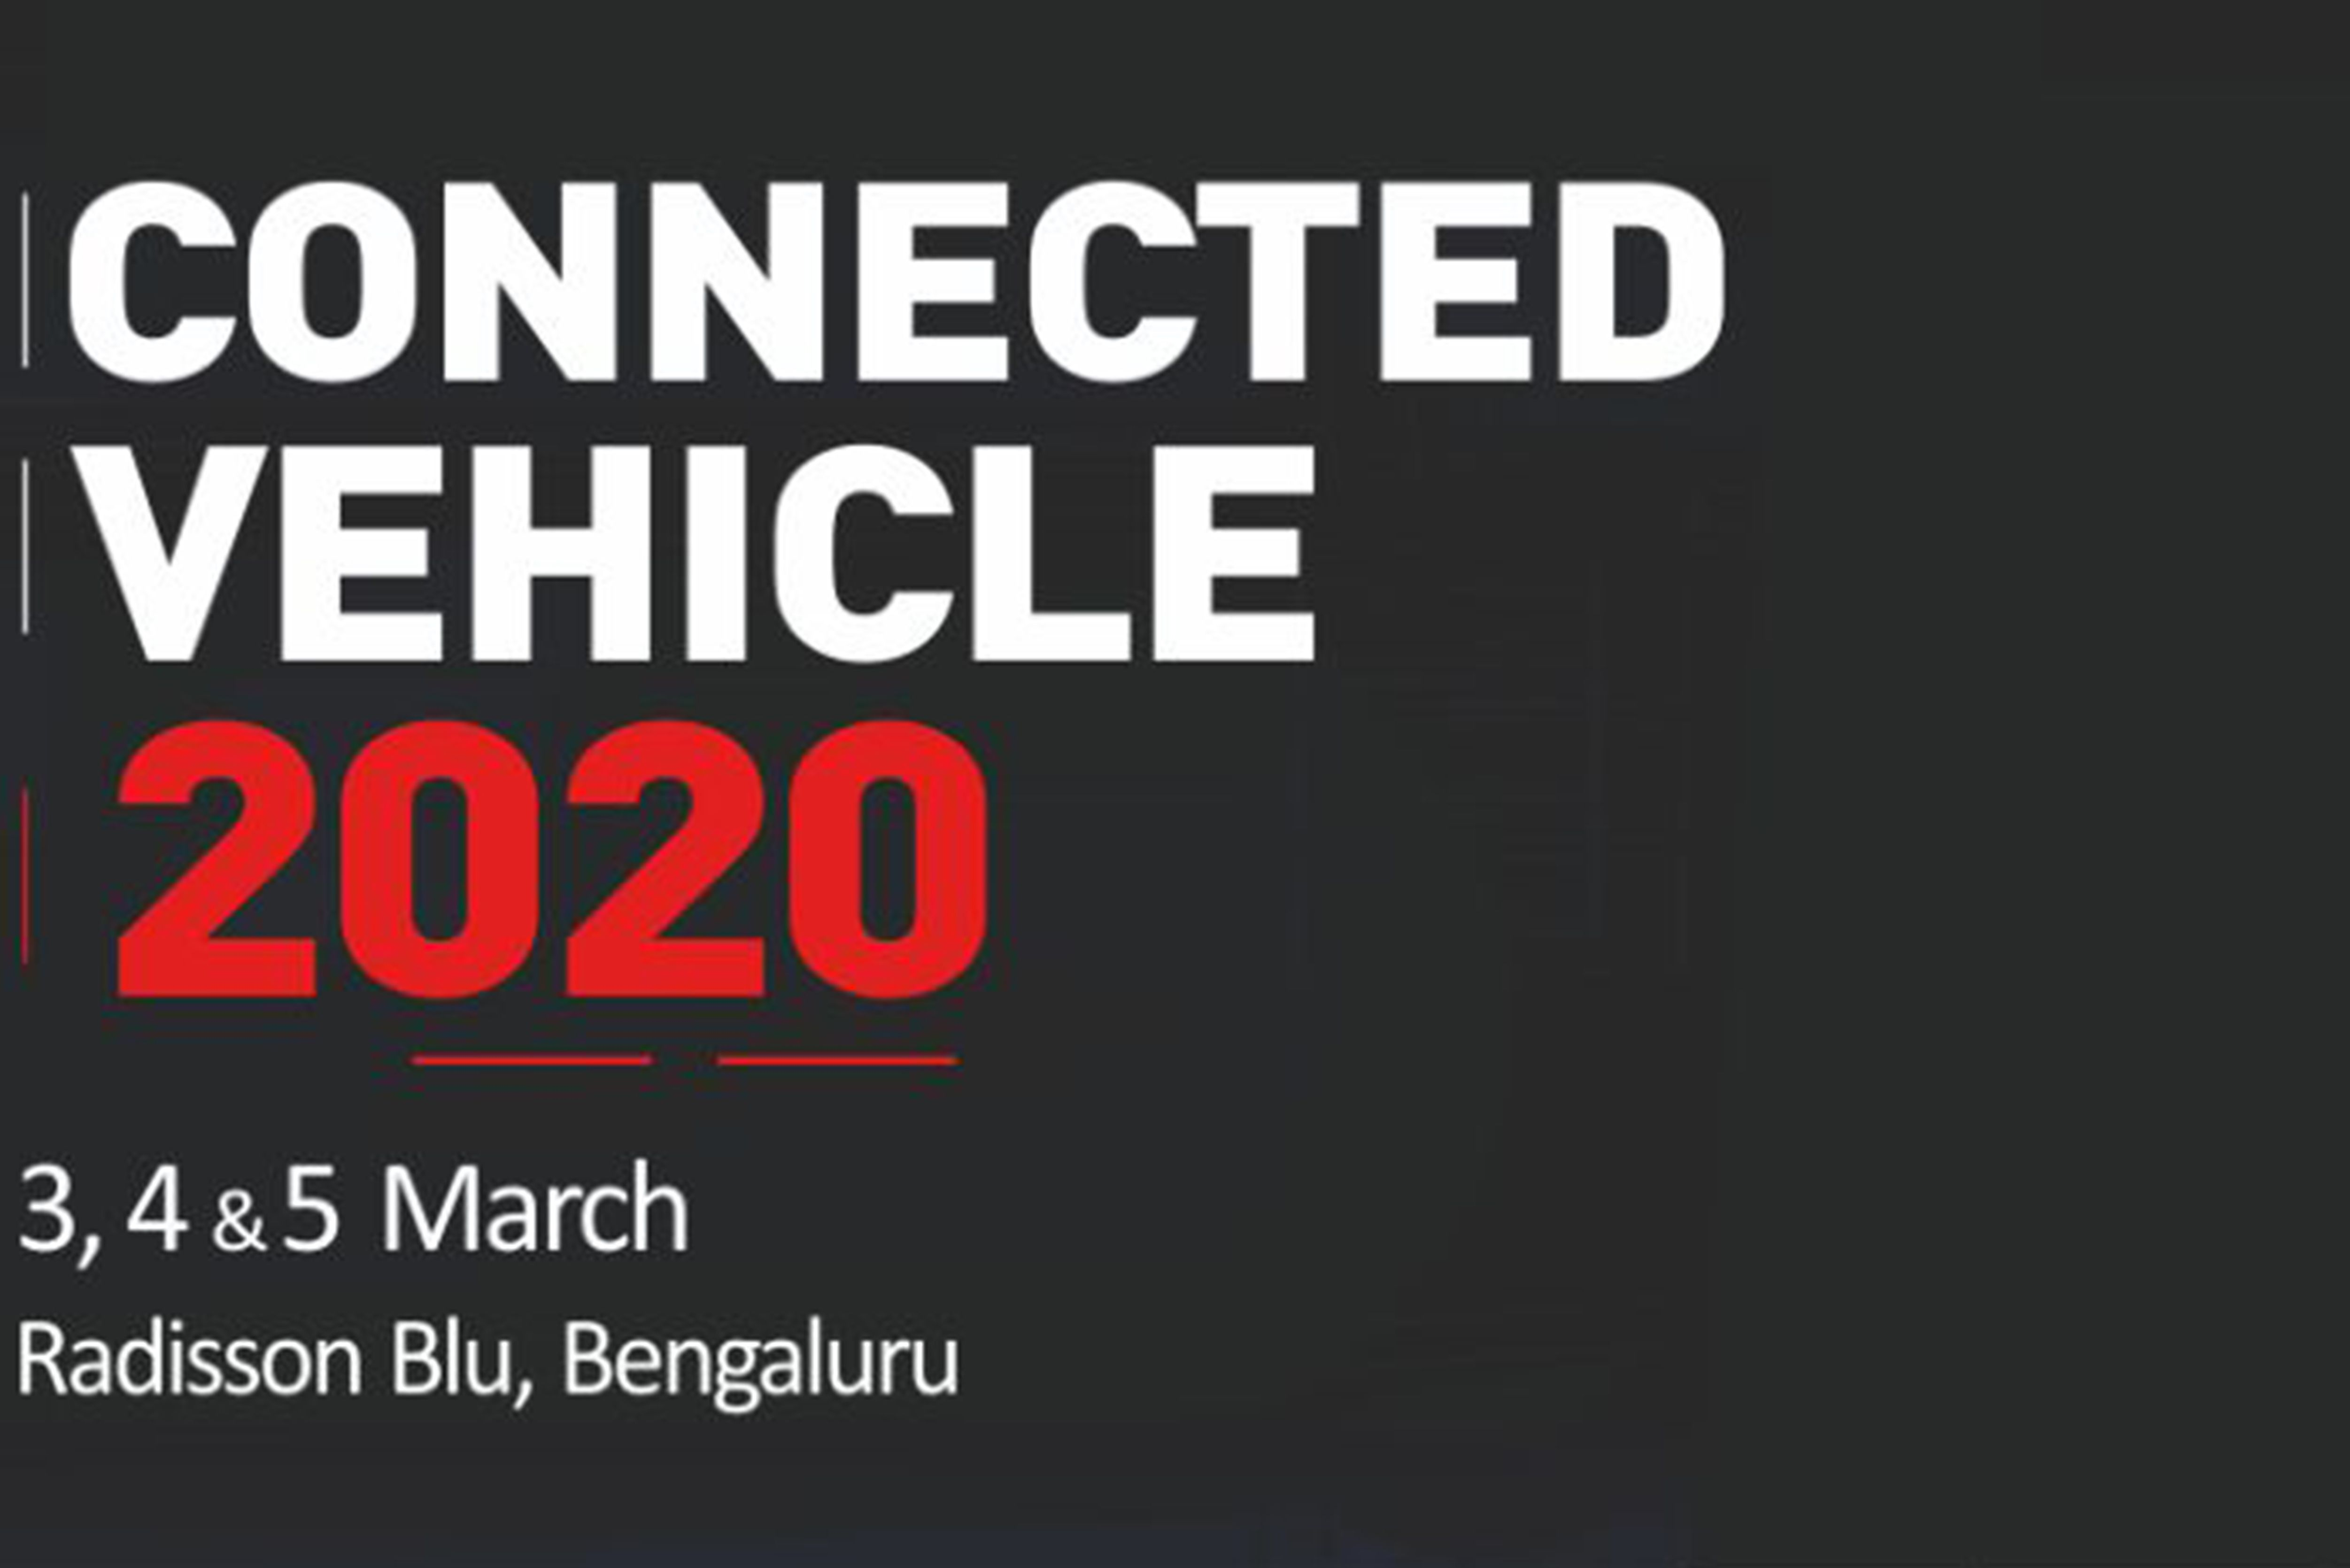 connectedvehicle2020